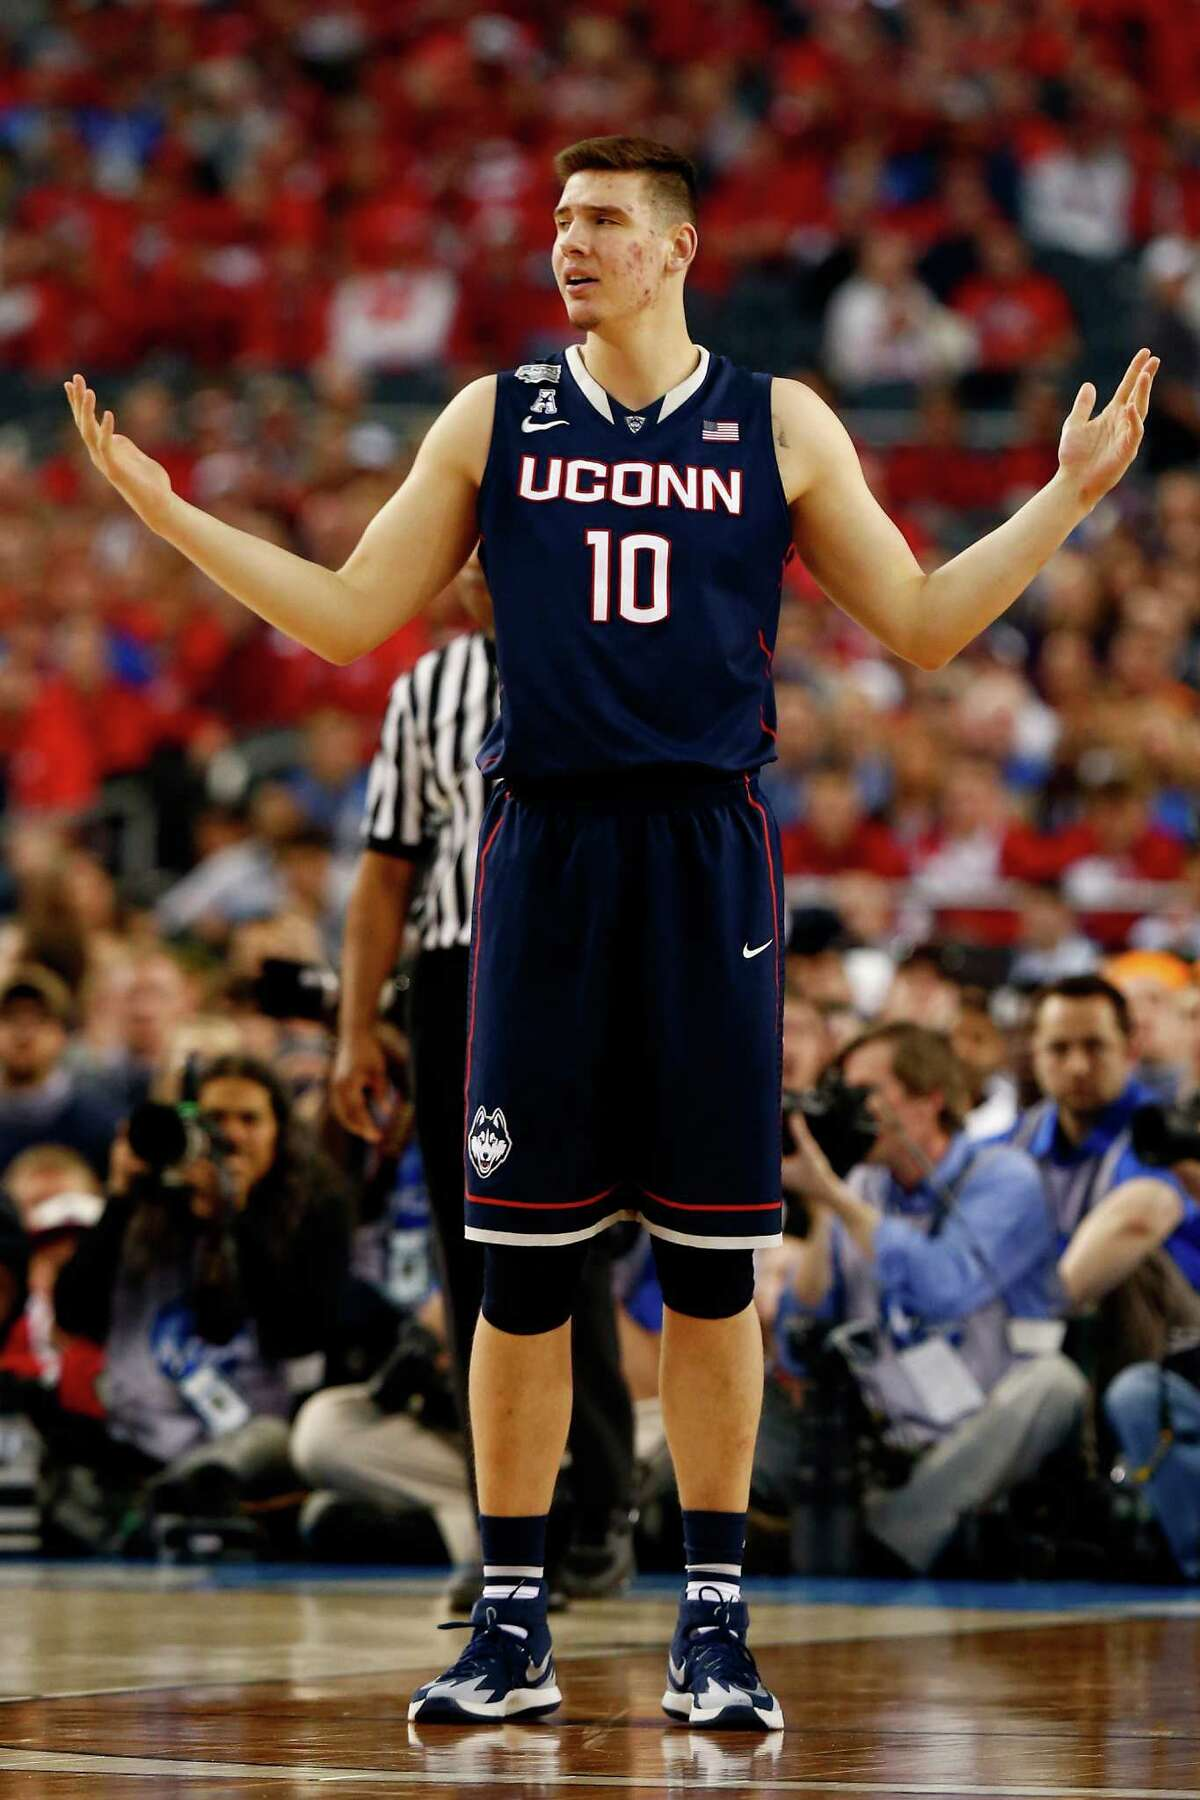 ARLINGTON, TX - APRIL 05: Tyler Olander #10 of the Connecticut Huskies reacts during the NCAA Men's Final Four Semifinal against the Florida Gators at AT&T Stadium on April 5, 2014 in Arlington, Texas.